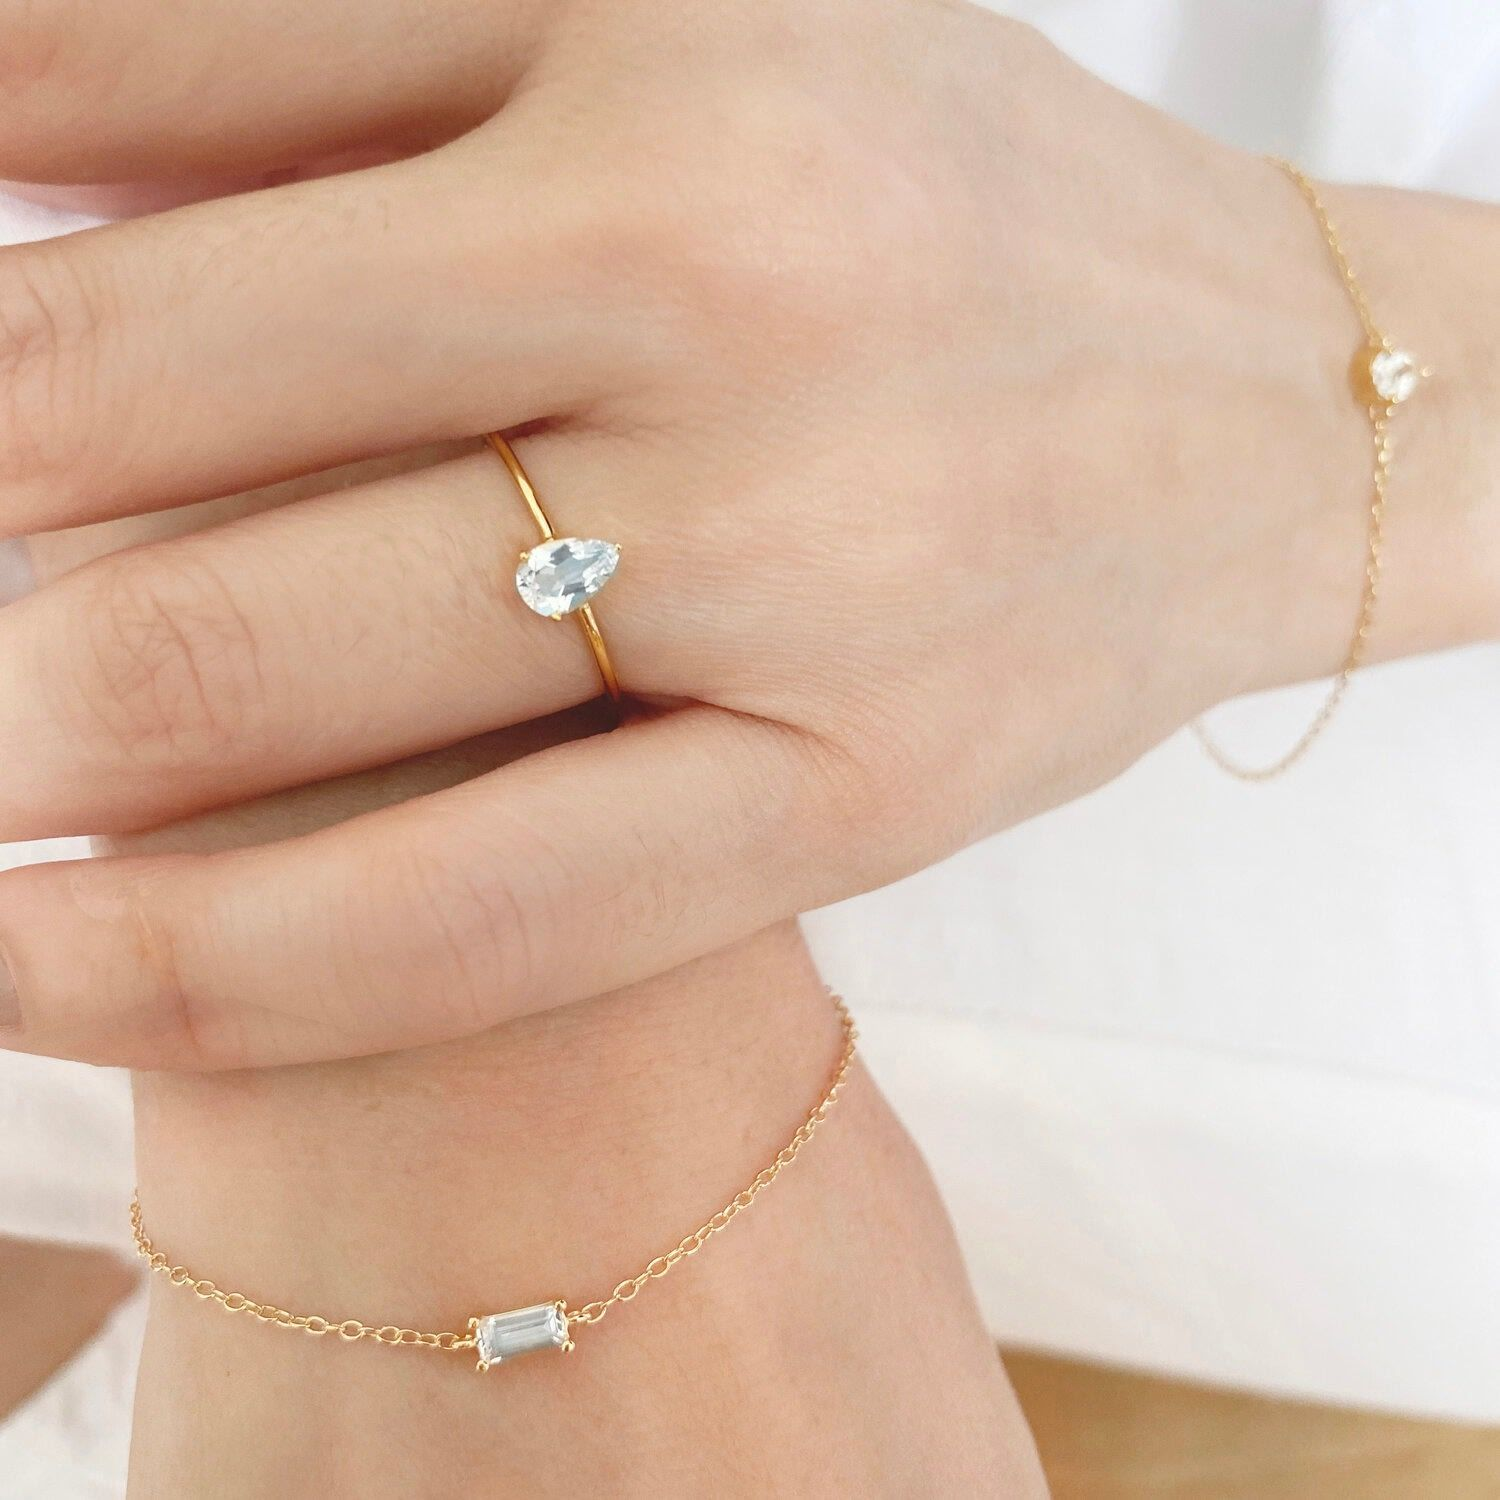 The Baguette Topaz Gold Sterling Silver Bracelet is the perfect everyday piece. This dainty demi-fine piece features a rectangle-cut White Topaz gem on a classic jewel chain - wear this bracelet as a stand-alone piece or layer with other different shapes. Consciously crafted with 925 sterling silver bases, premium gold vermeil and White Topaz stones, Essentials celebrates the four classic shapes in the jewelry world - circle, square, rectangle and pear. Each gem is cut in a similar method to dia